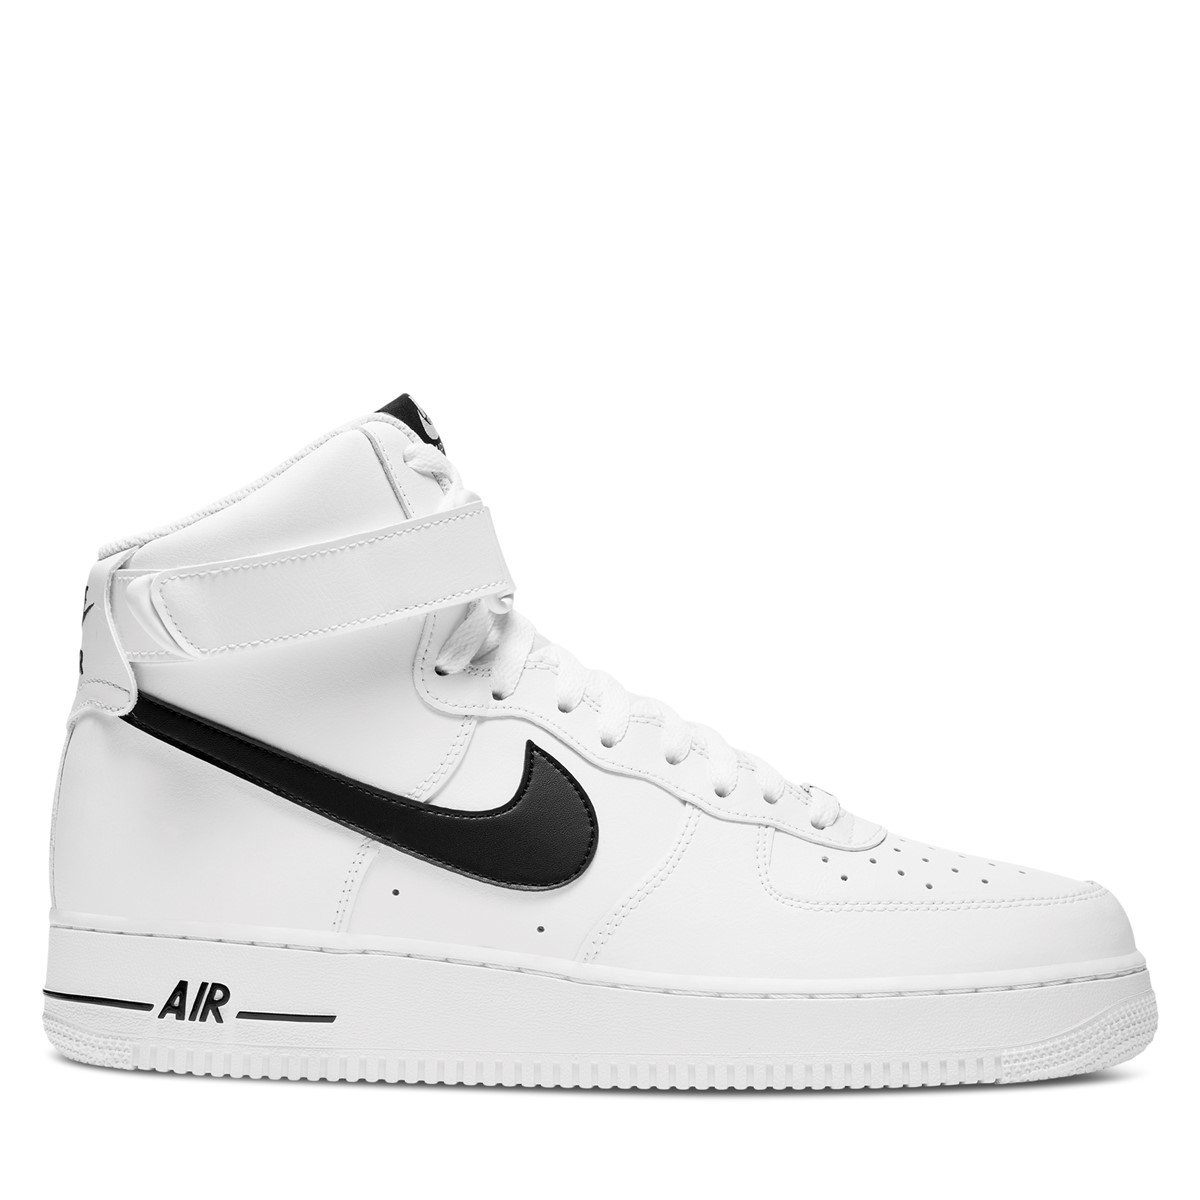 Men's Air Force 1 '07 High Top Sneakers in White